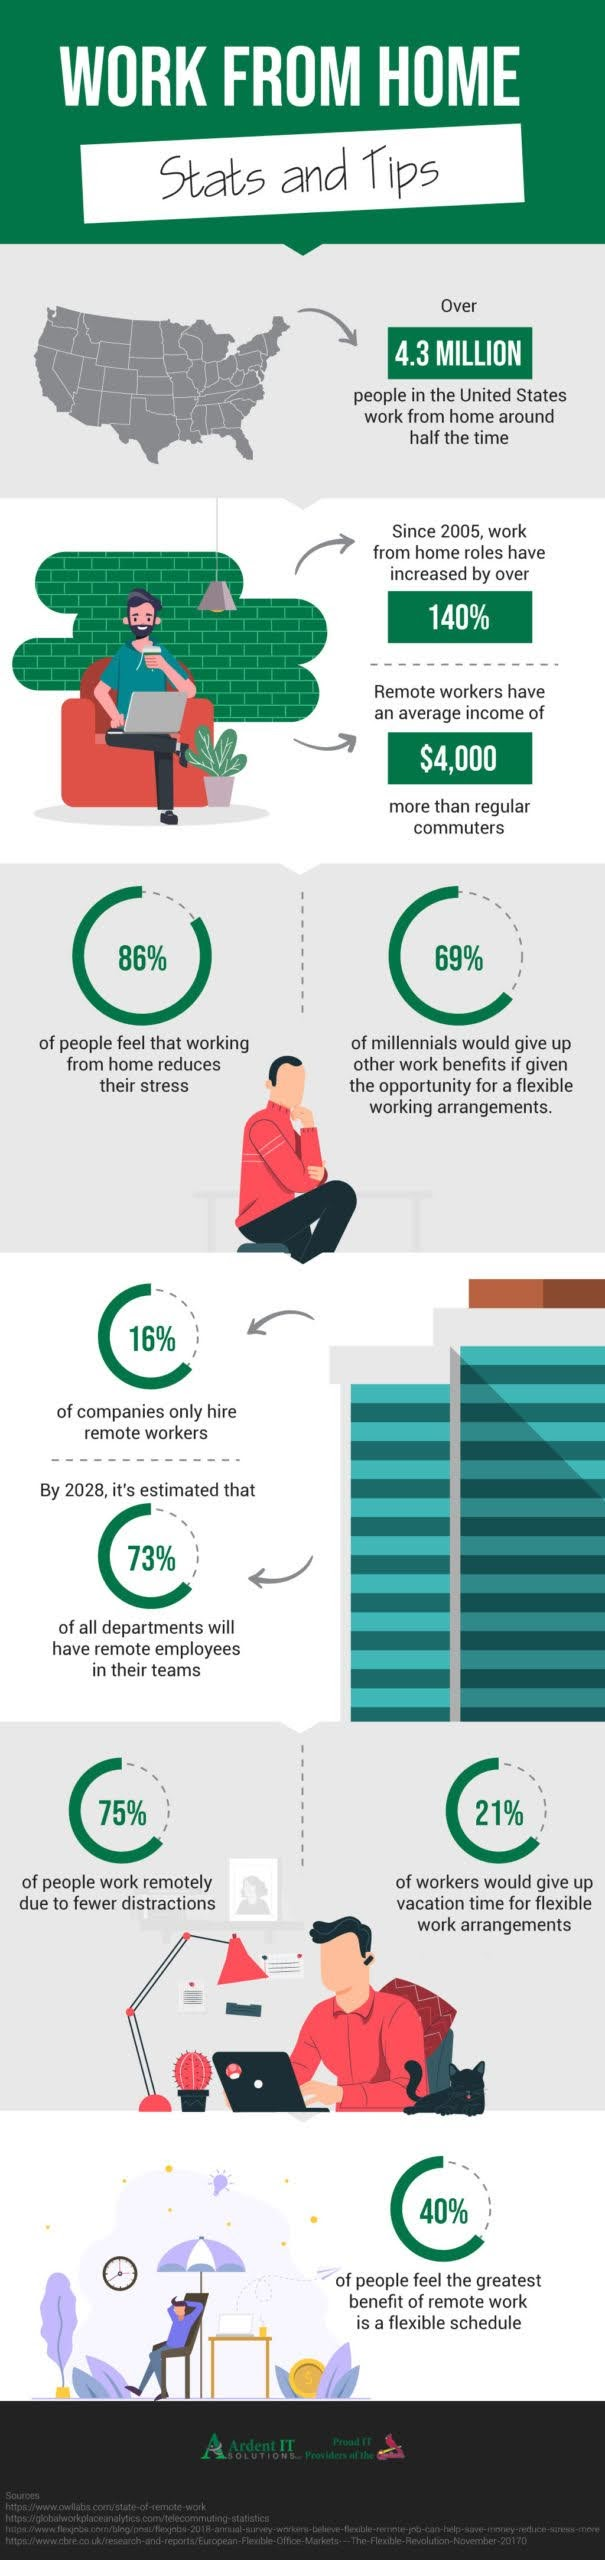 Working From Home Stats and Tips #infographic